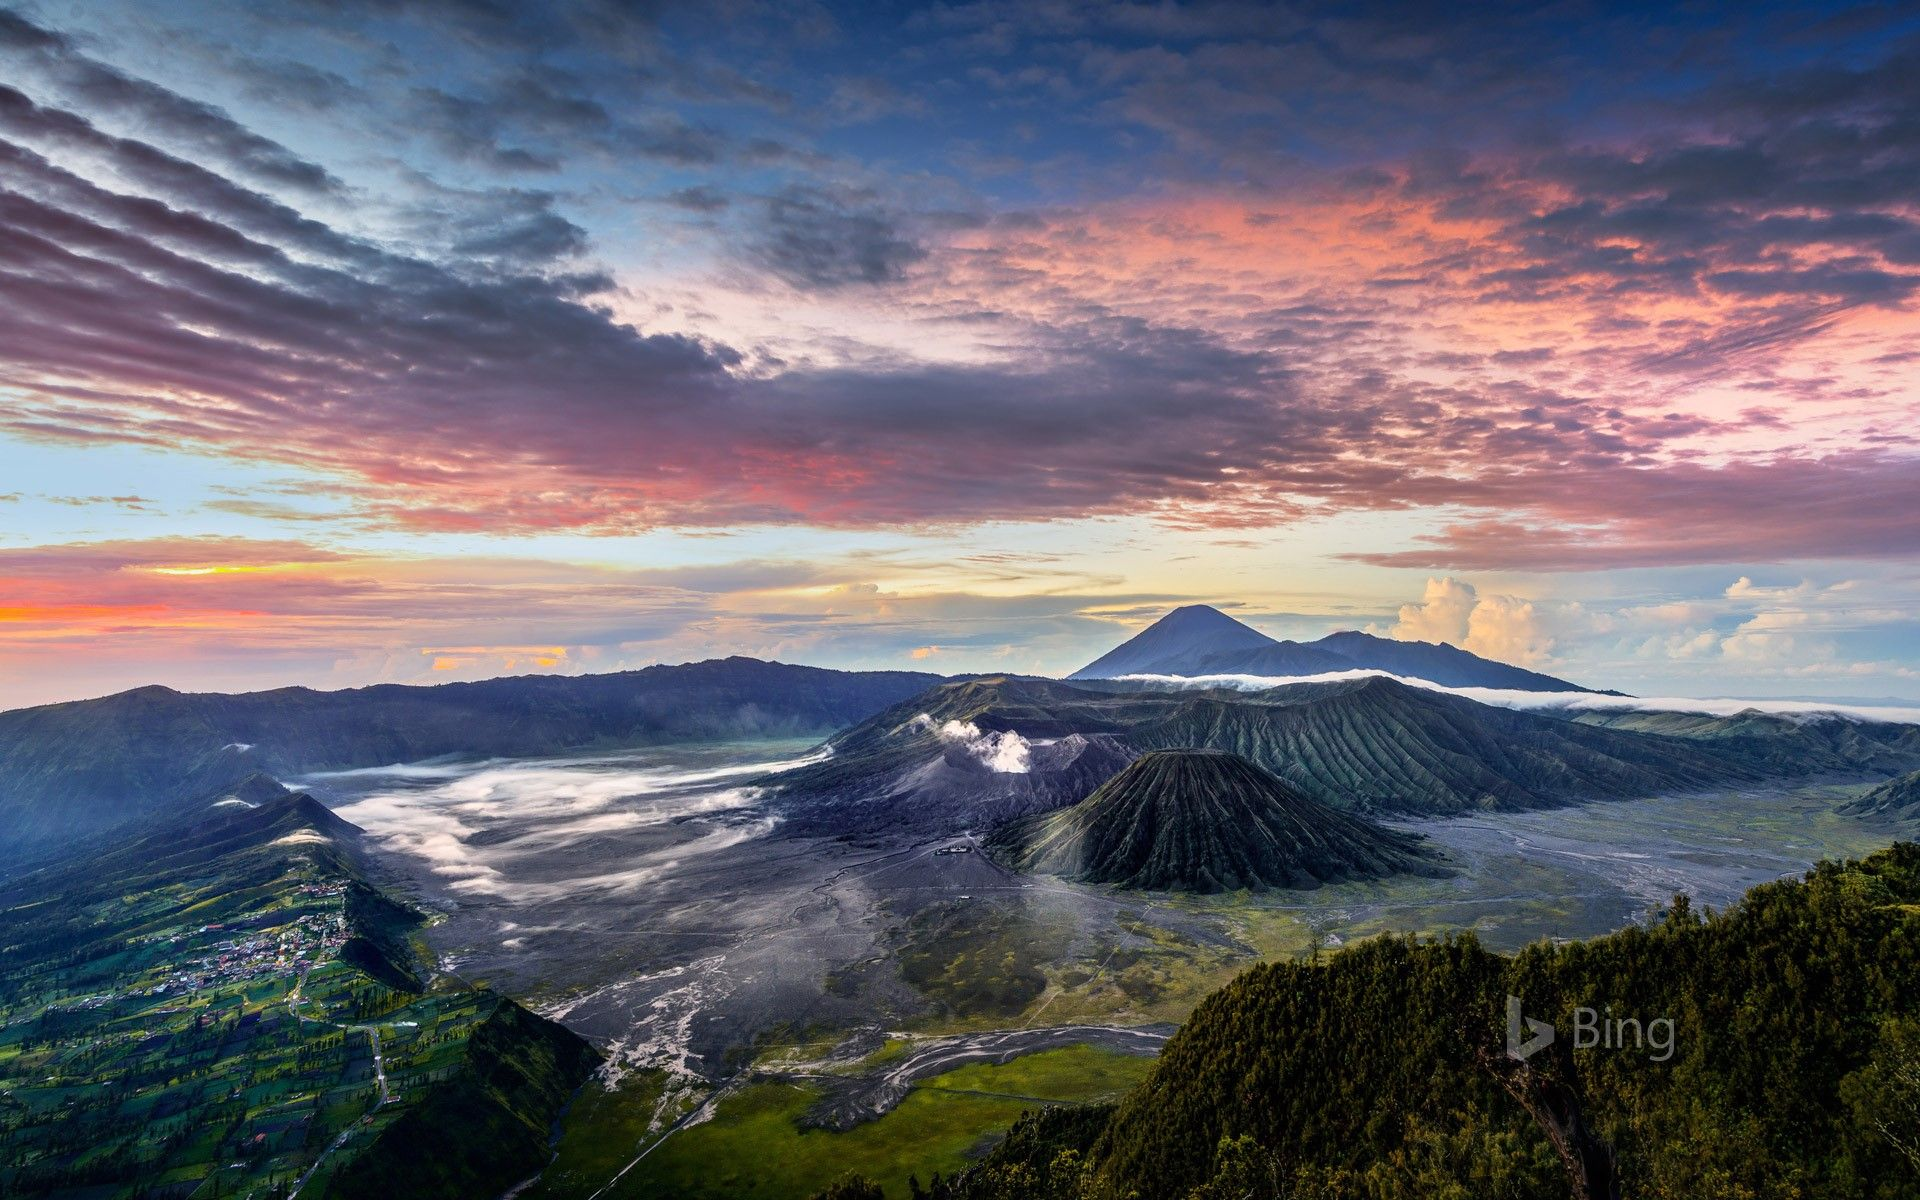 bing daily picture for may 30 smoldering mount bromo in east java indonesia